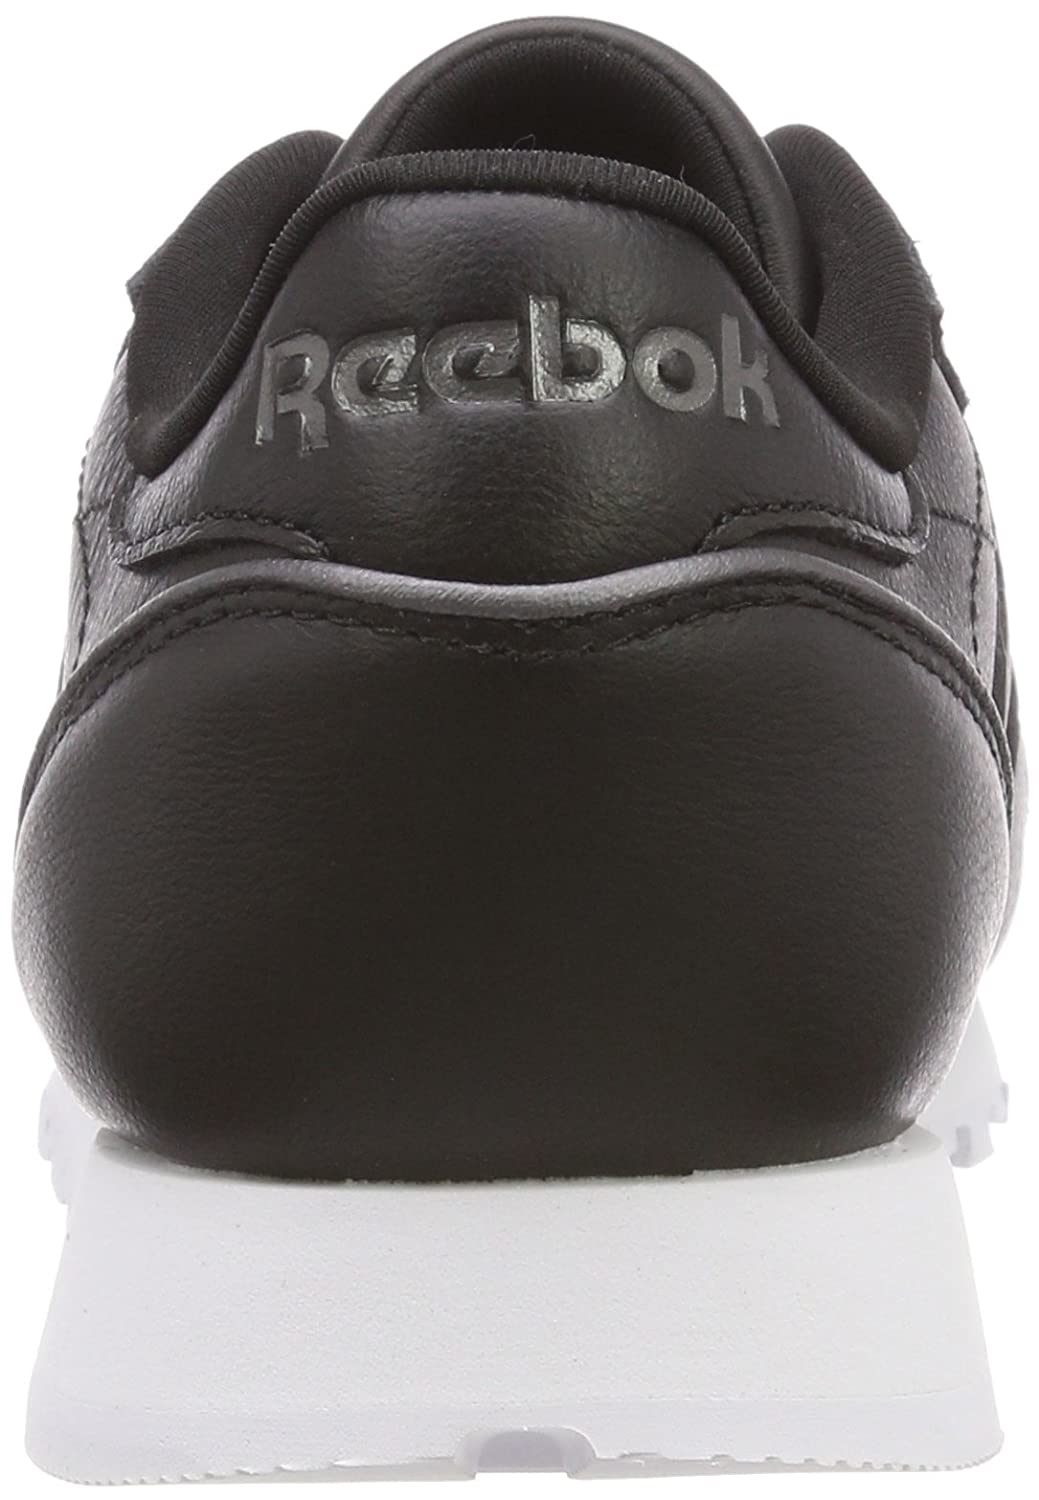 Reebok Women s Classic Leather Hardware Trainers  Amazon.co.uk  Shoes   Bags 31287b340